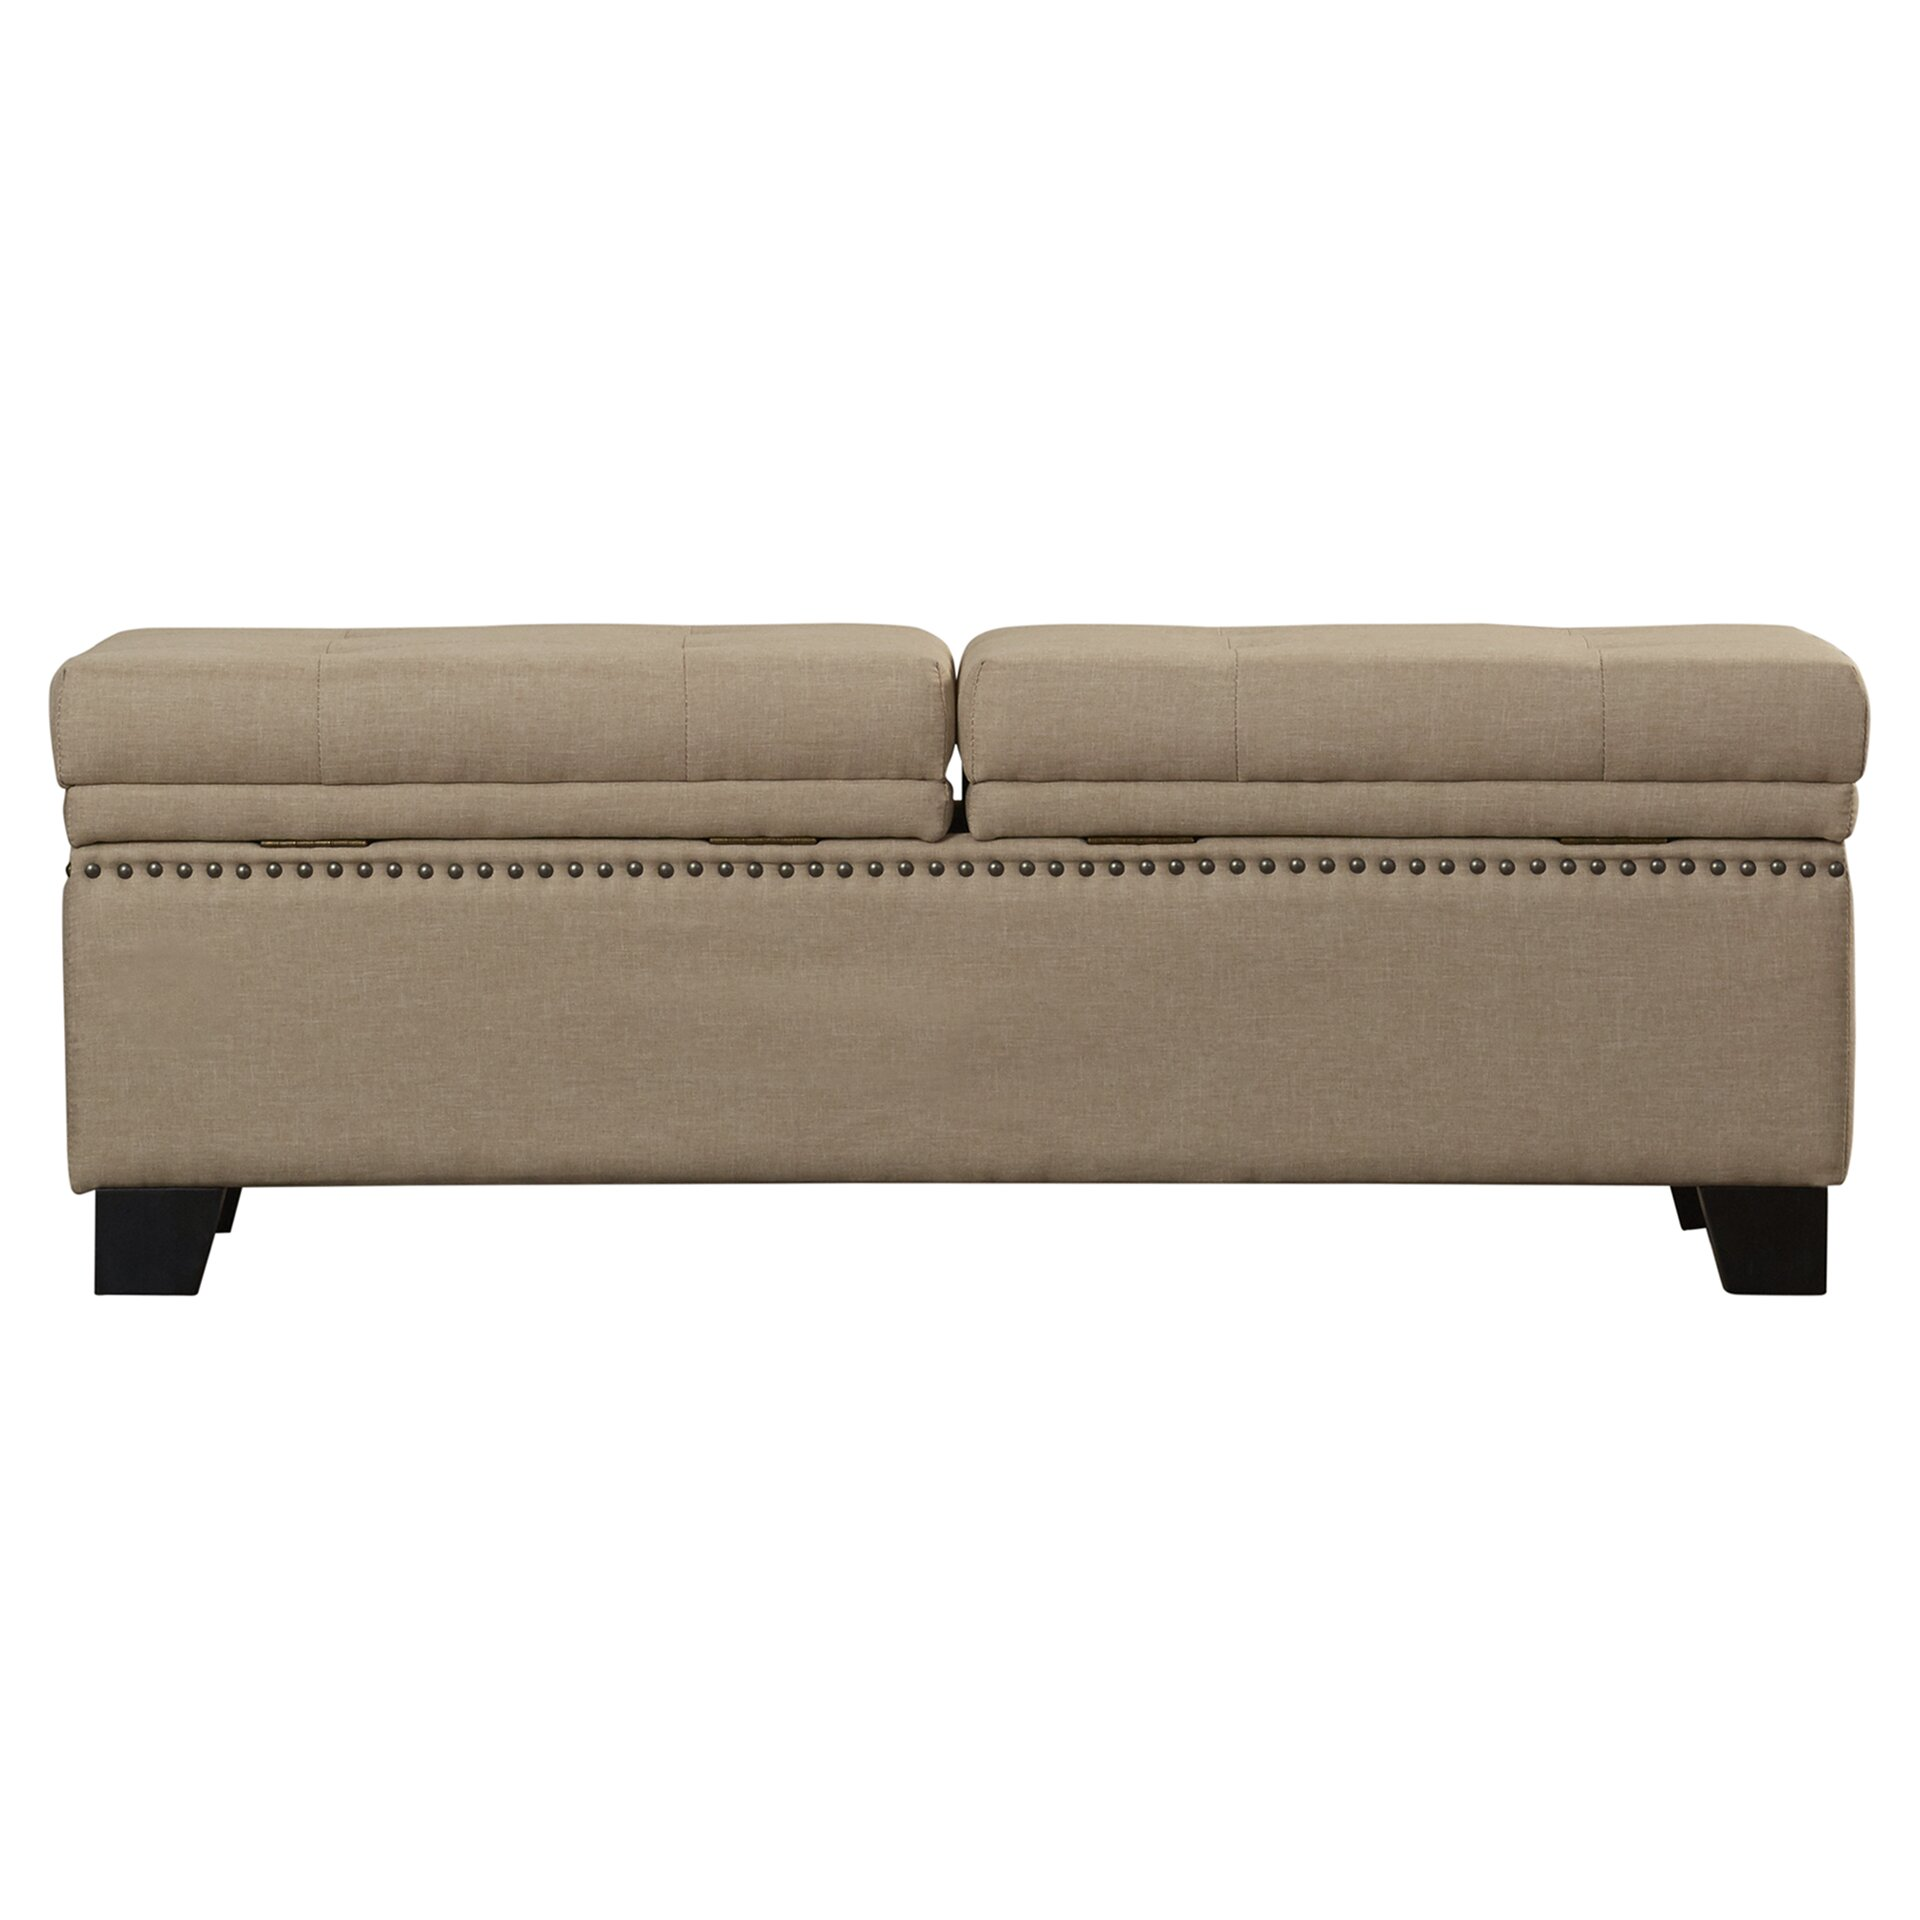 Darby Home Co Moffet Hinged Upholstered Storage Bedroom Bench Reviews